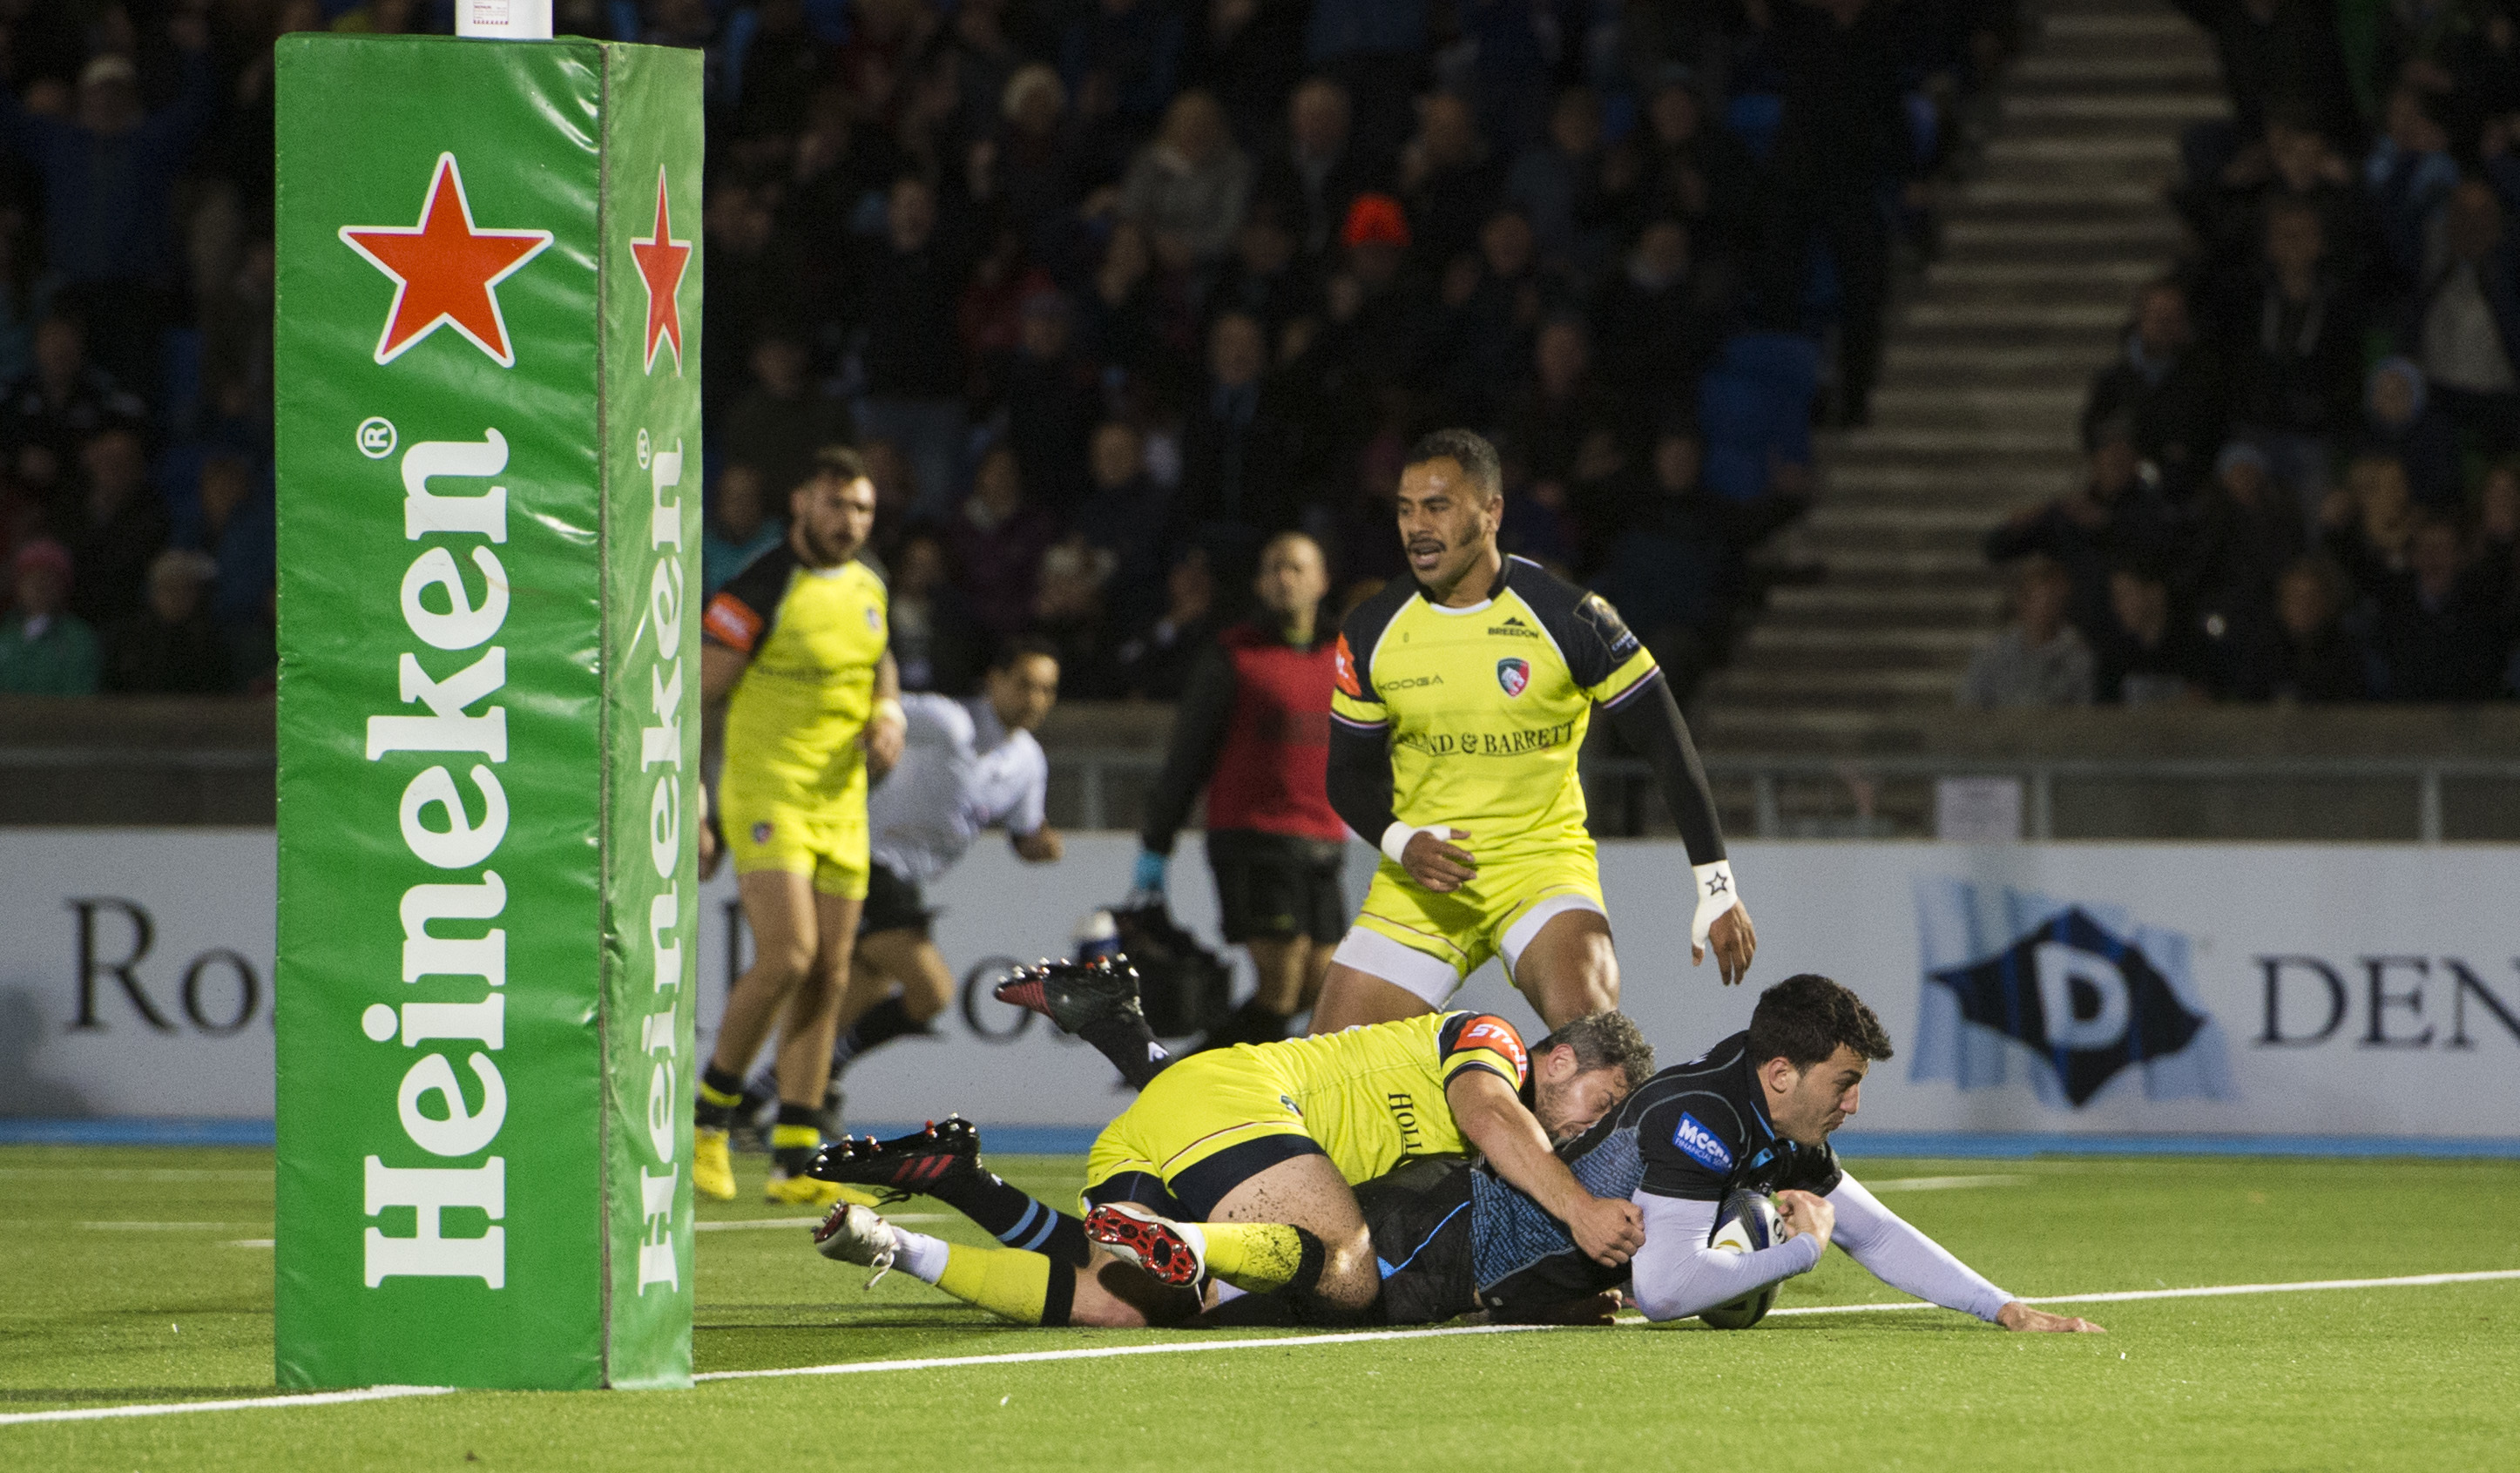 Leonardo Sarto's first try for Glasgow against Leicester came as the Warriors made a key tactical switch in the first half.